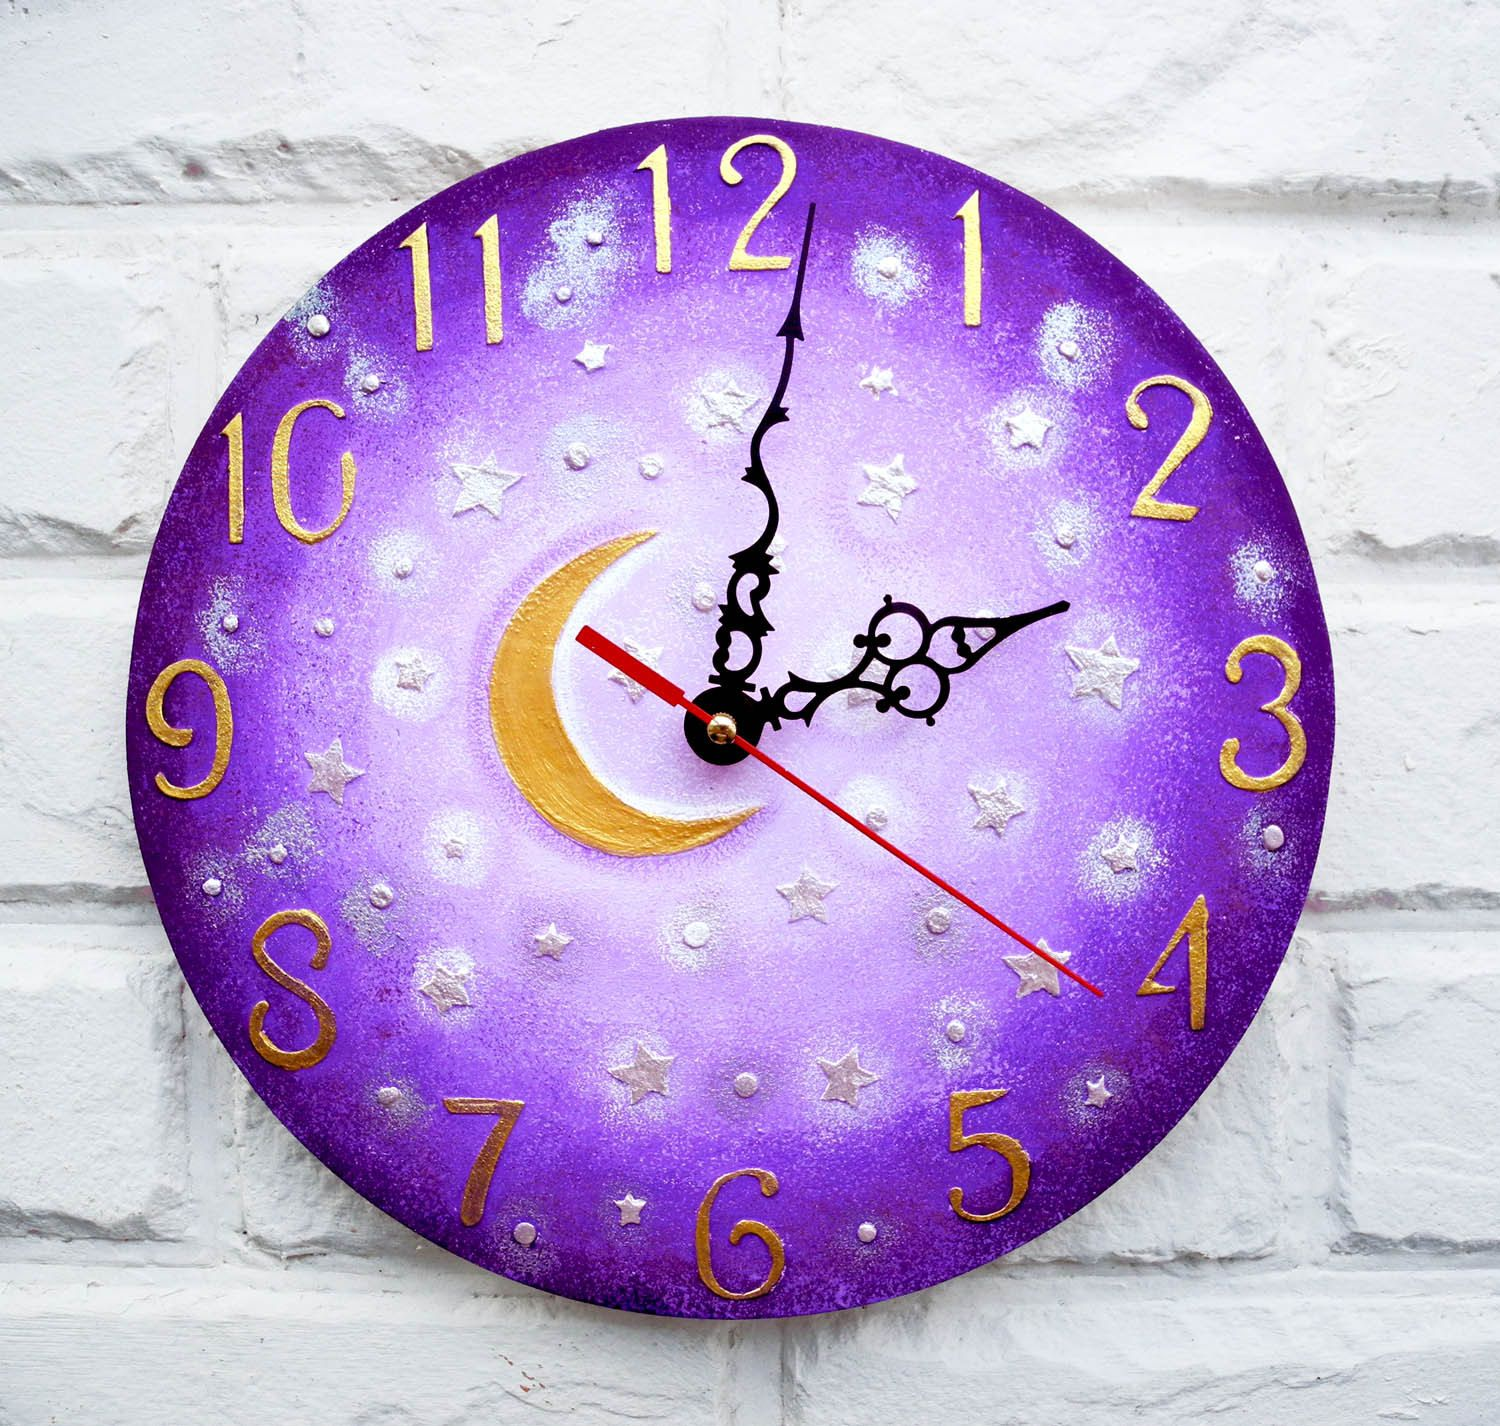 The Purple Moon And Stars Wall Clock Home Decor For Children Baby